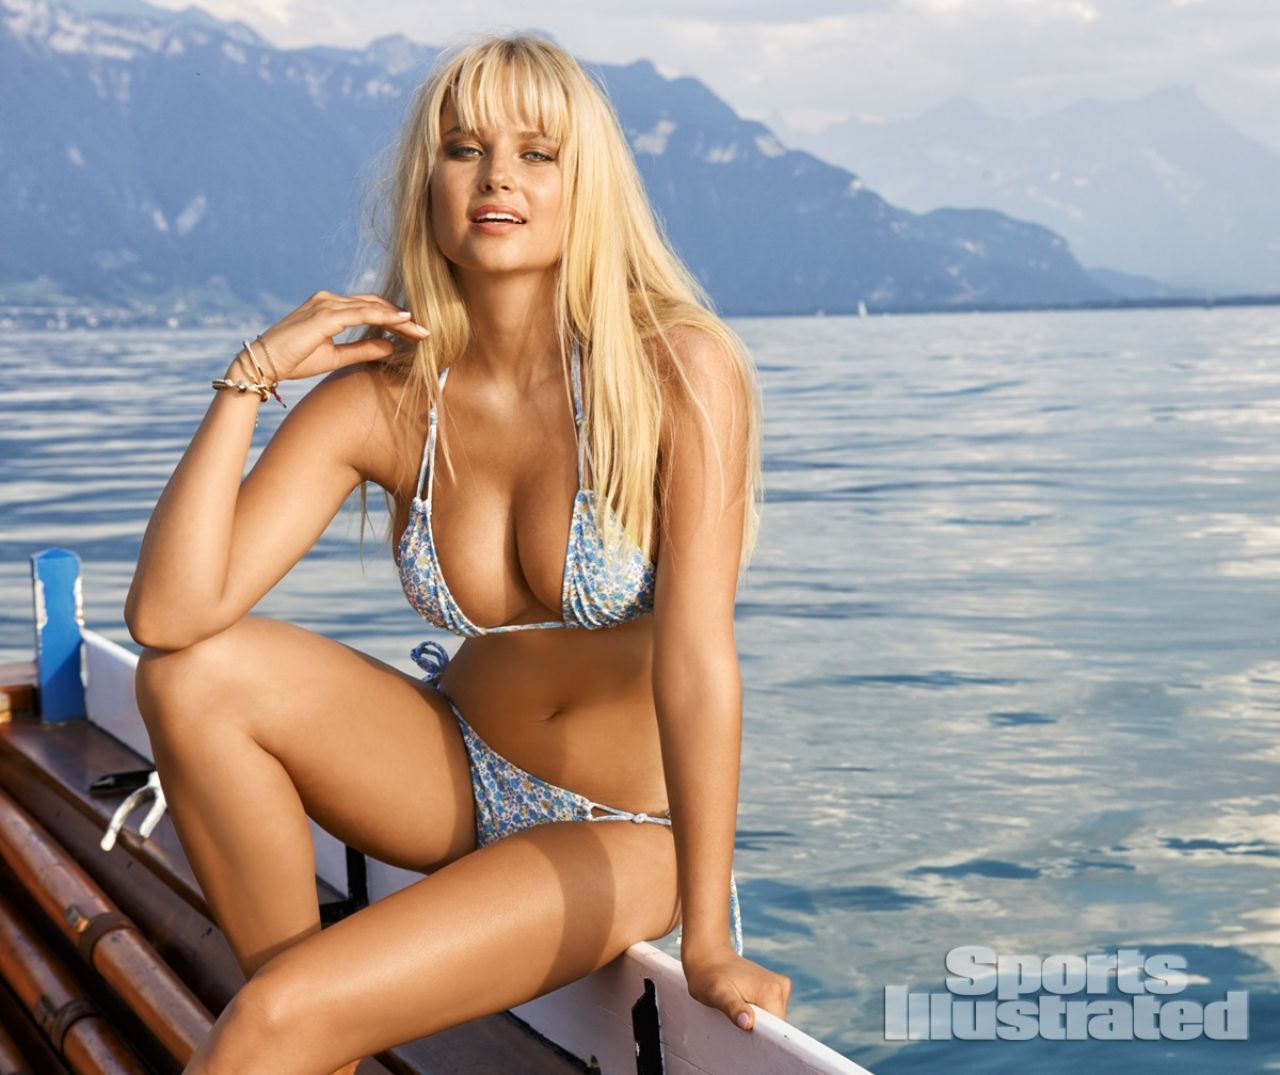 Genevieve Morton Sports Illustrated 2014 Swimsuit Issue